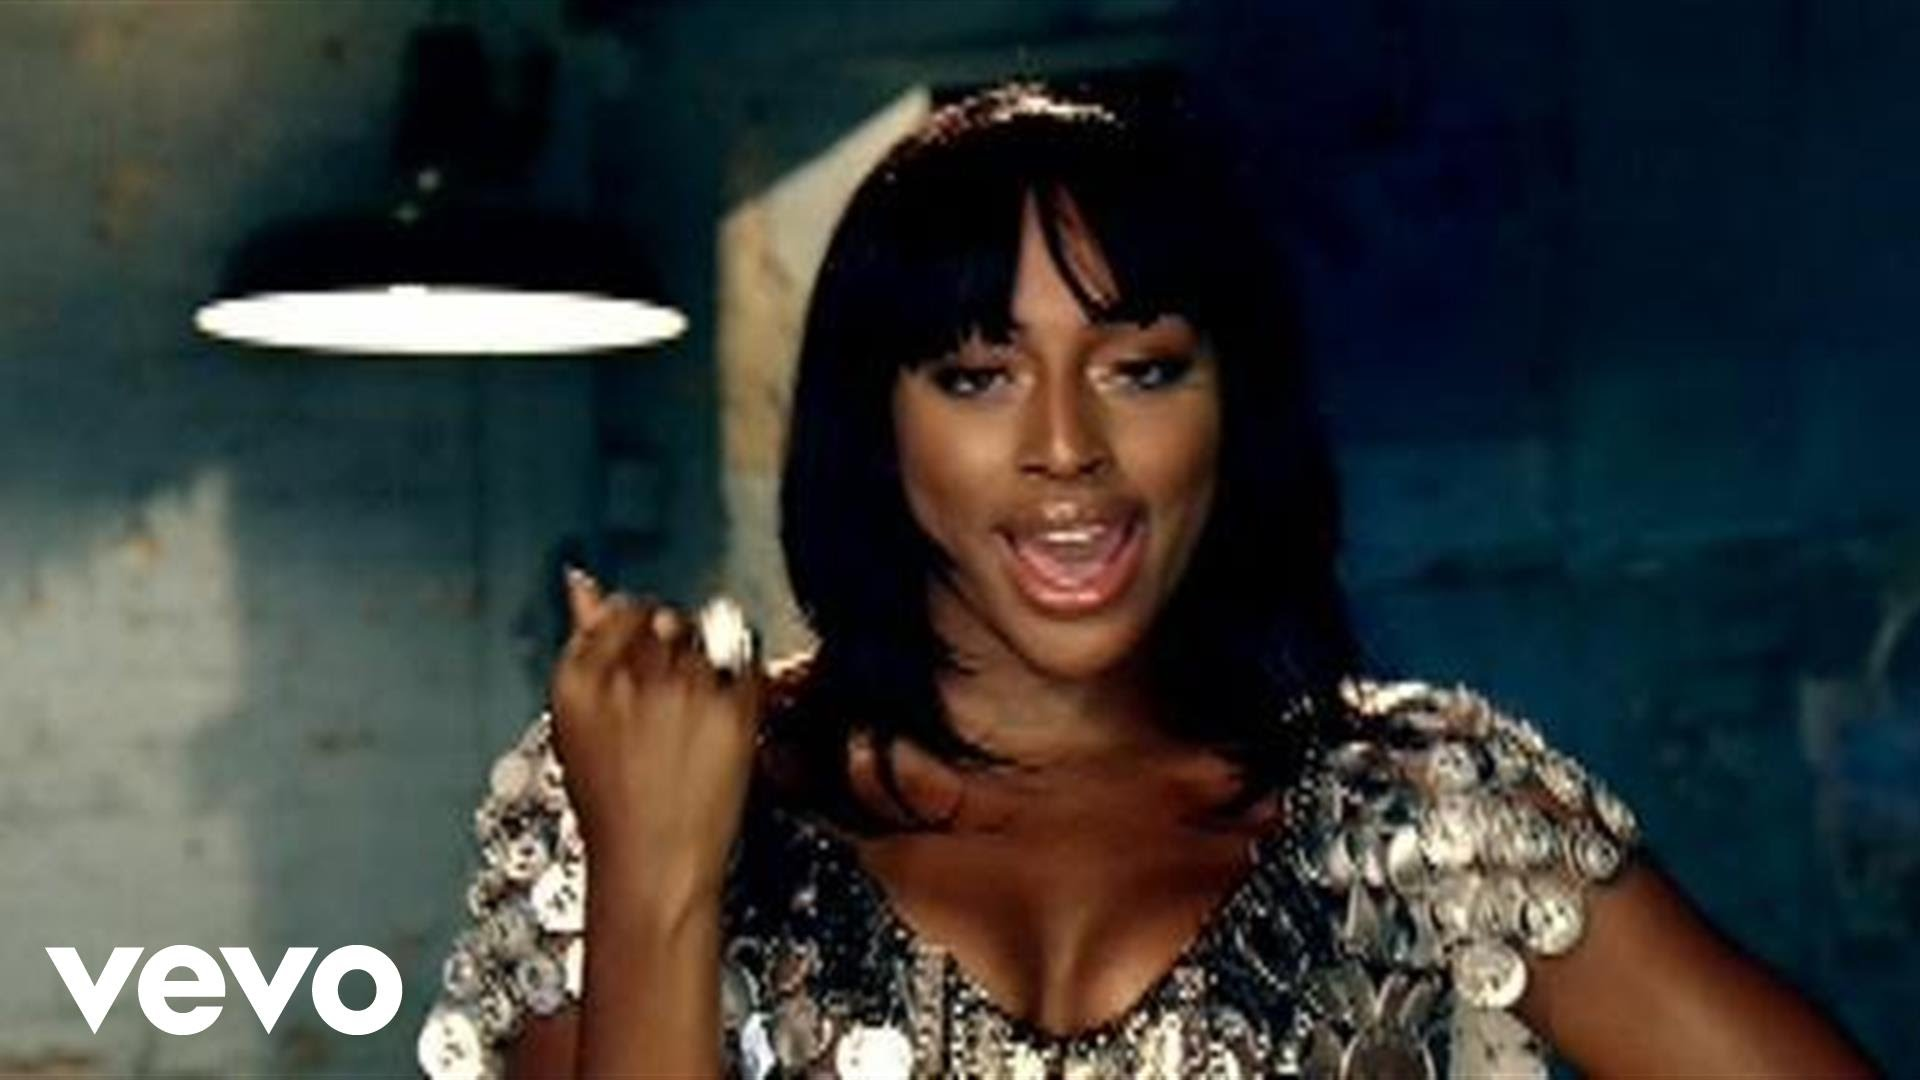 Alexandra Burke feat. Flo Rida – Bad Boys